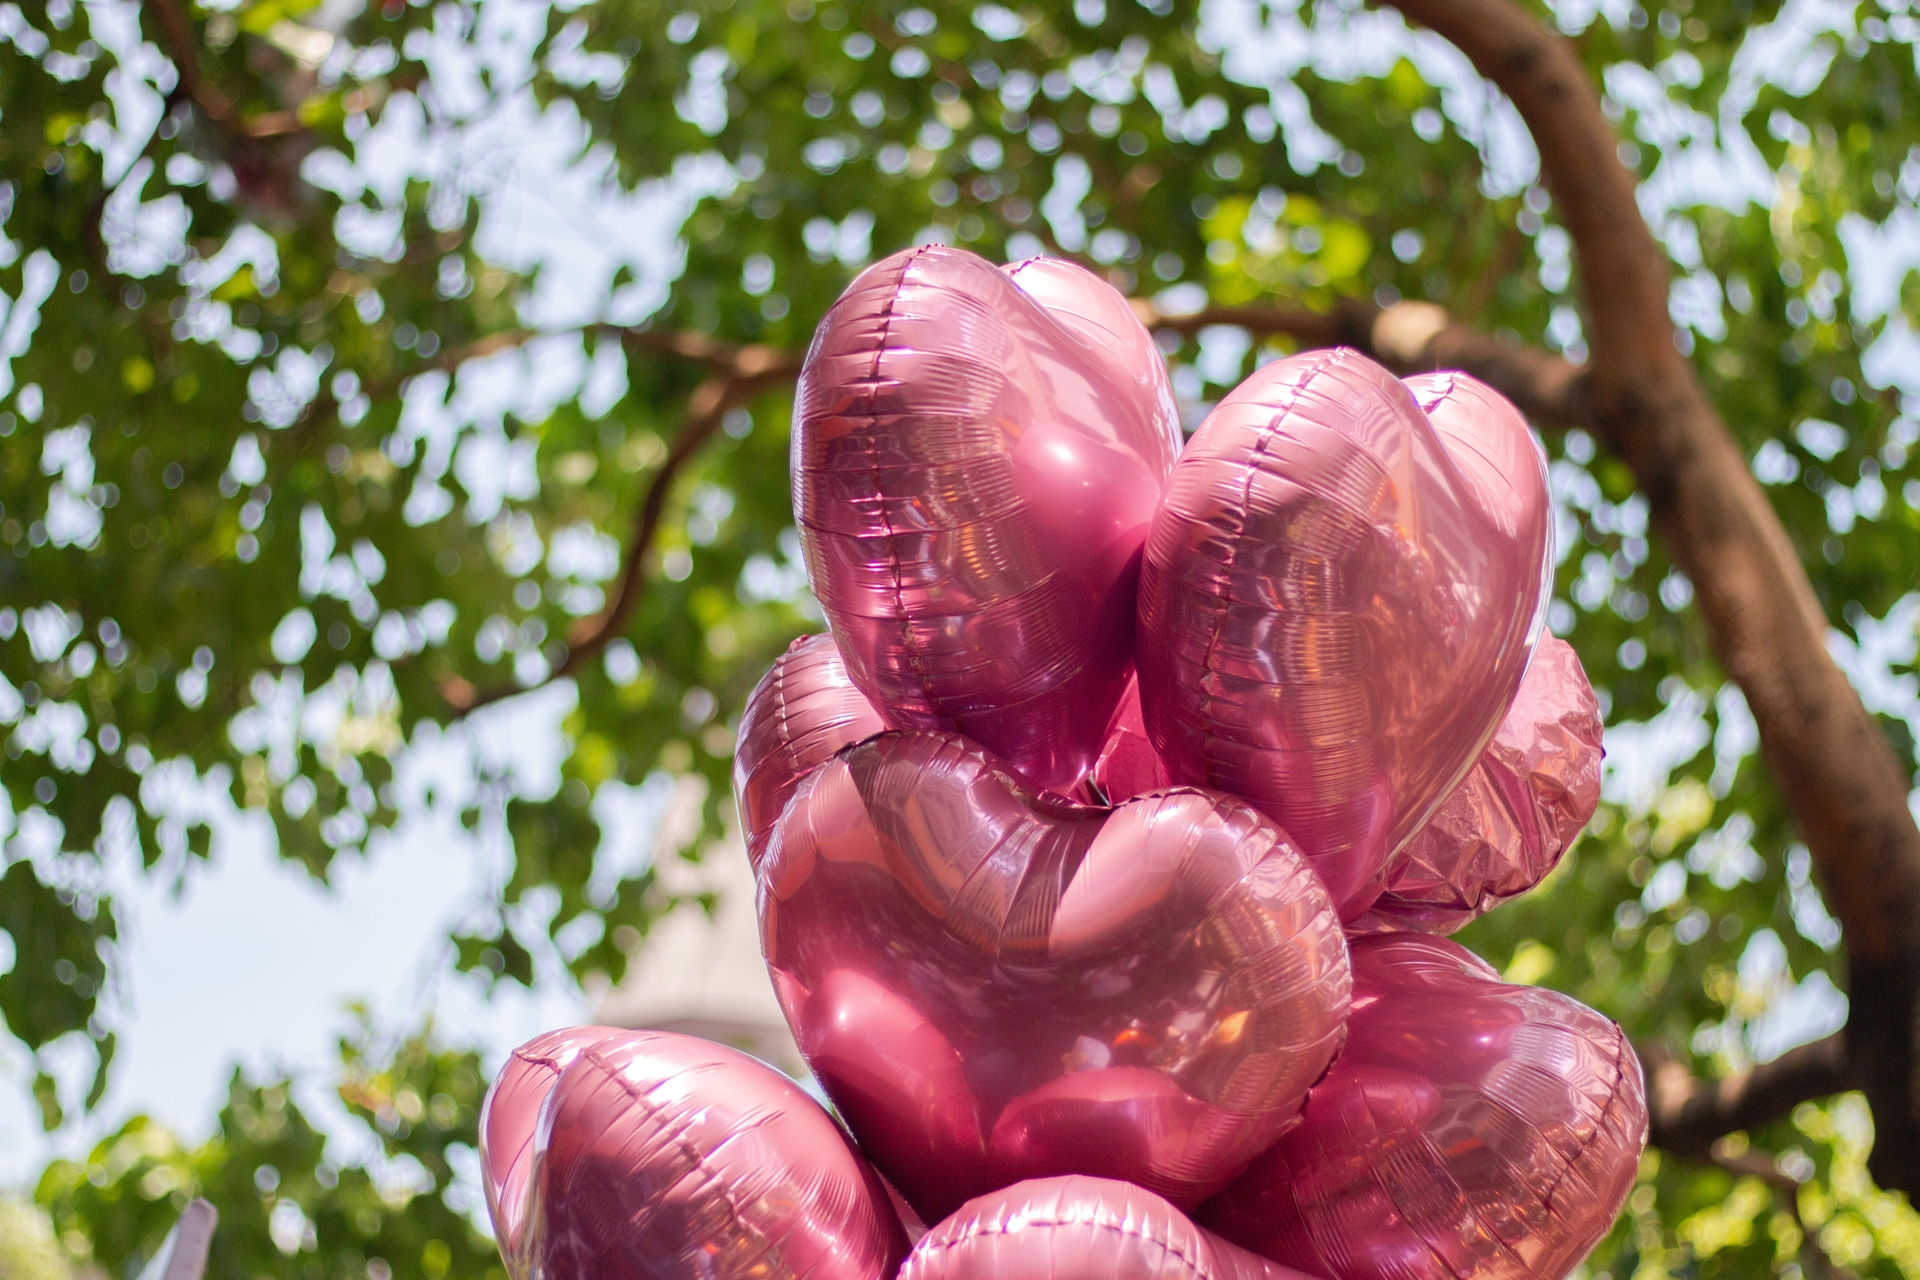 Metallic balloons should never be released outdoors and should always be tied to a weight.